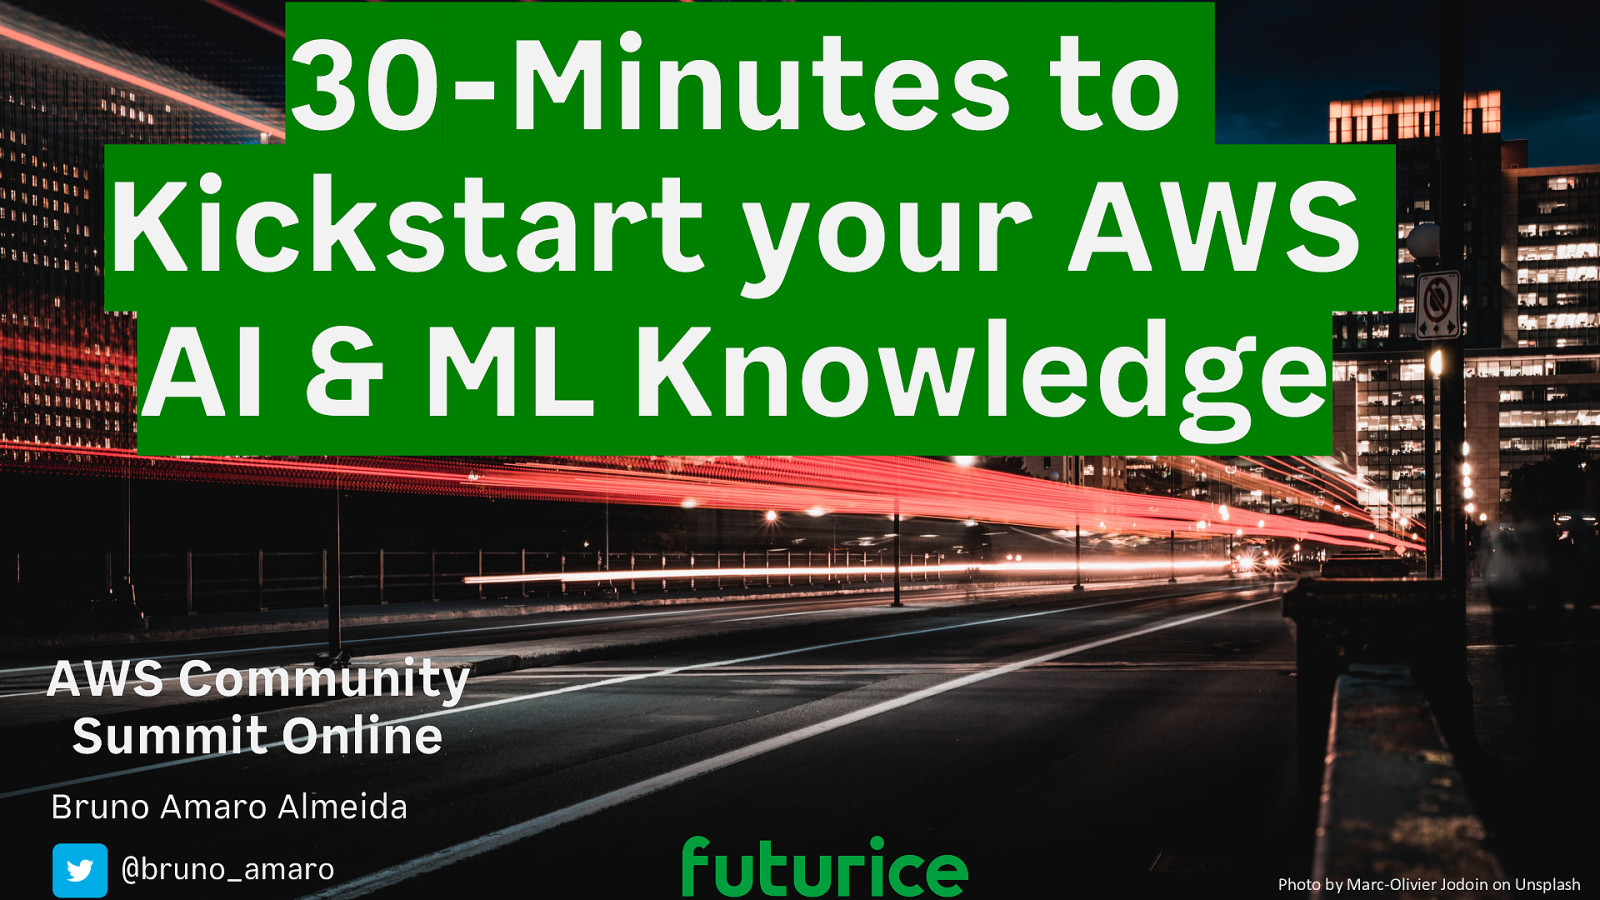 30-Minutes to Kickstart your AWS AI & ML Knowledge